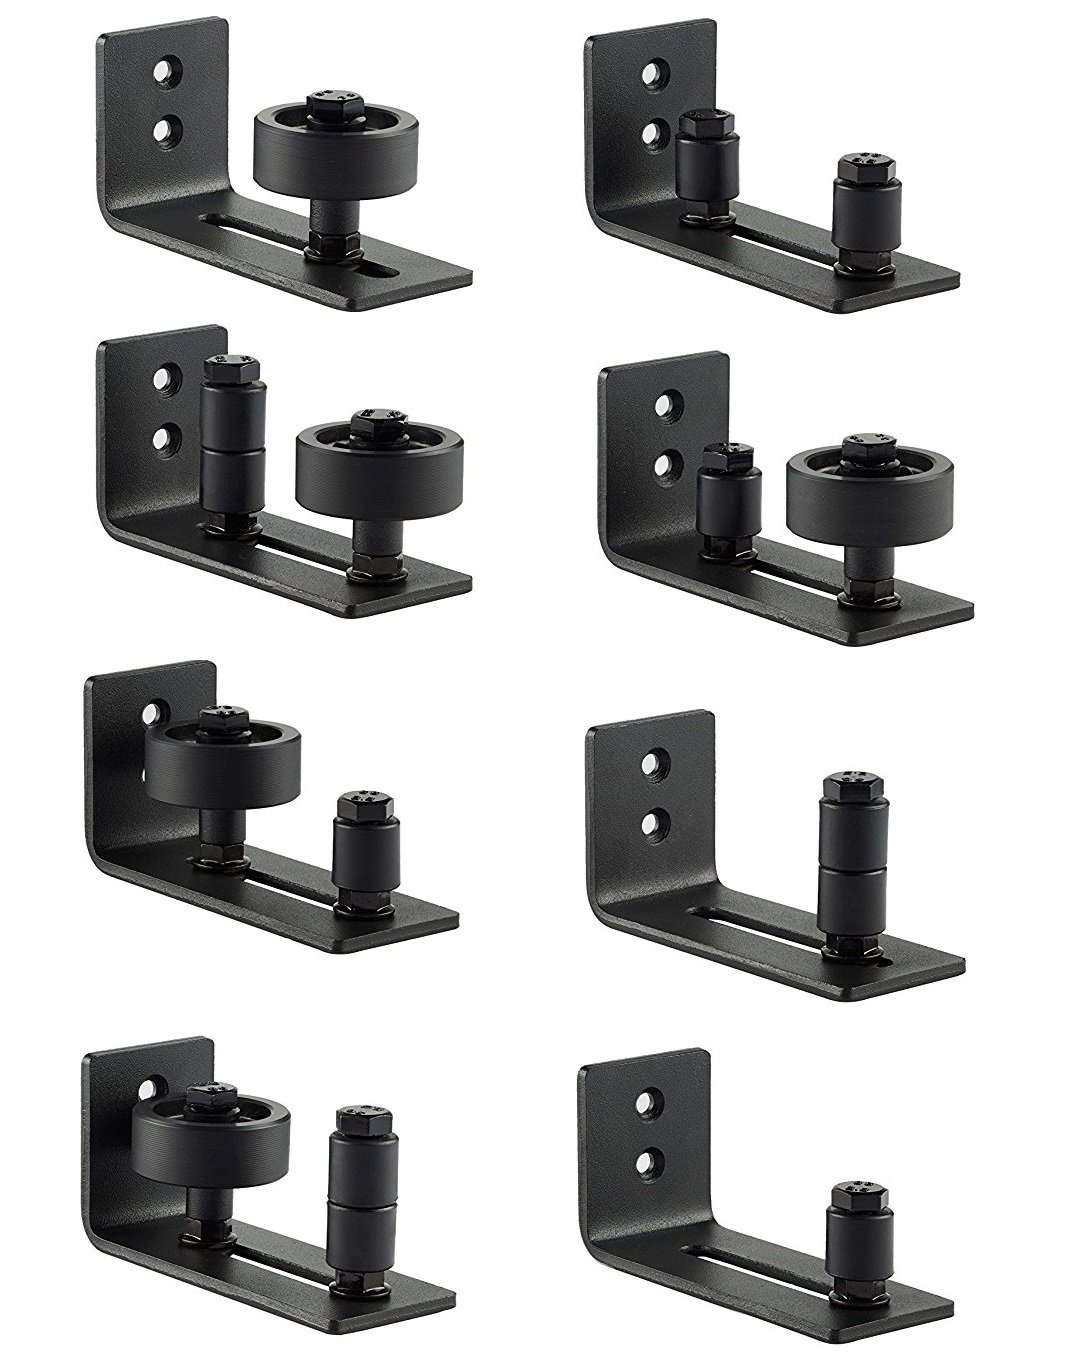 Barn Door Floor Guide Stay Roller - Black Powder Coated Adjustable Wall Mount Guide with up to 8 Different Setups - Perfect Fit for ALL Barn Doors